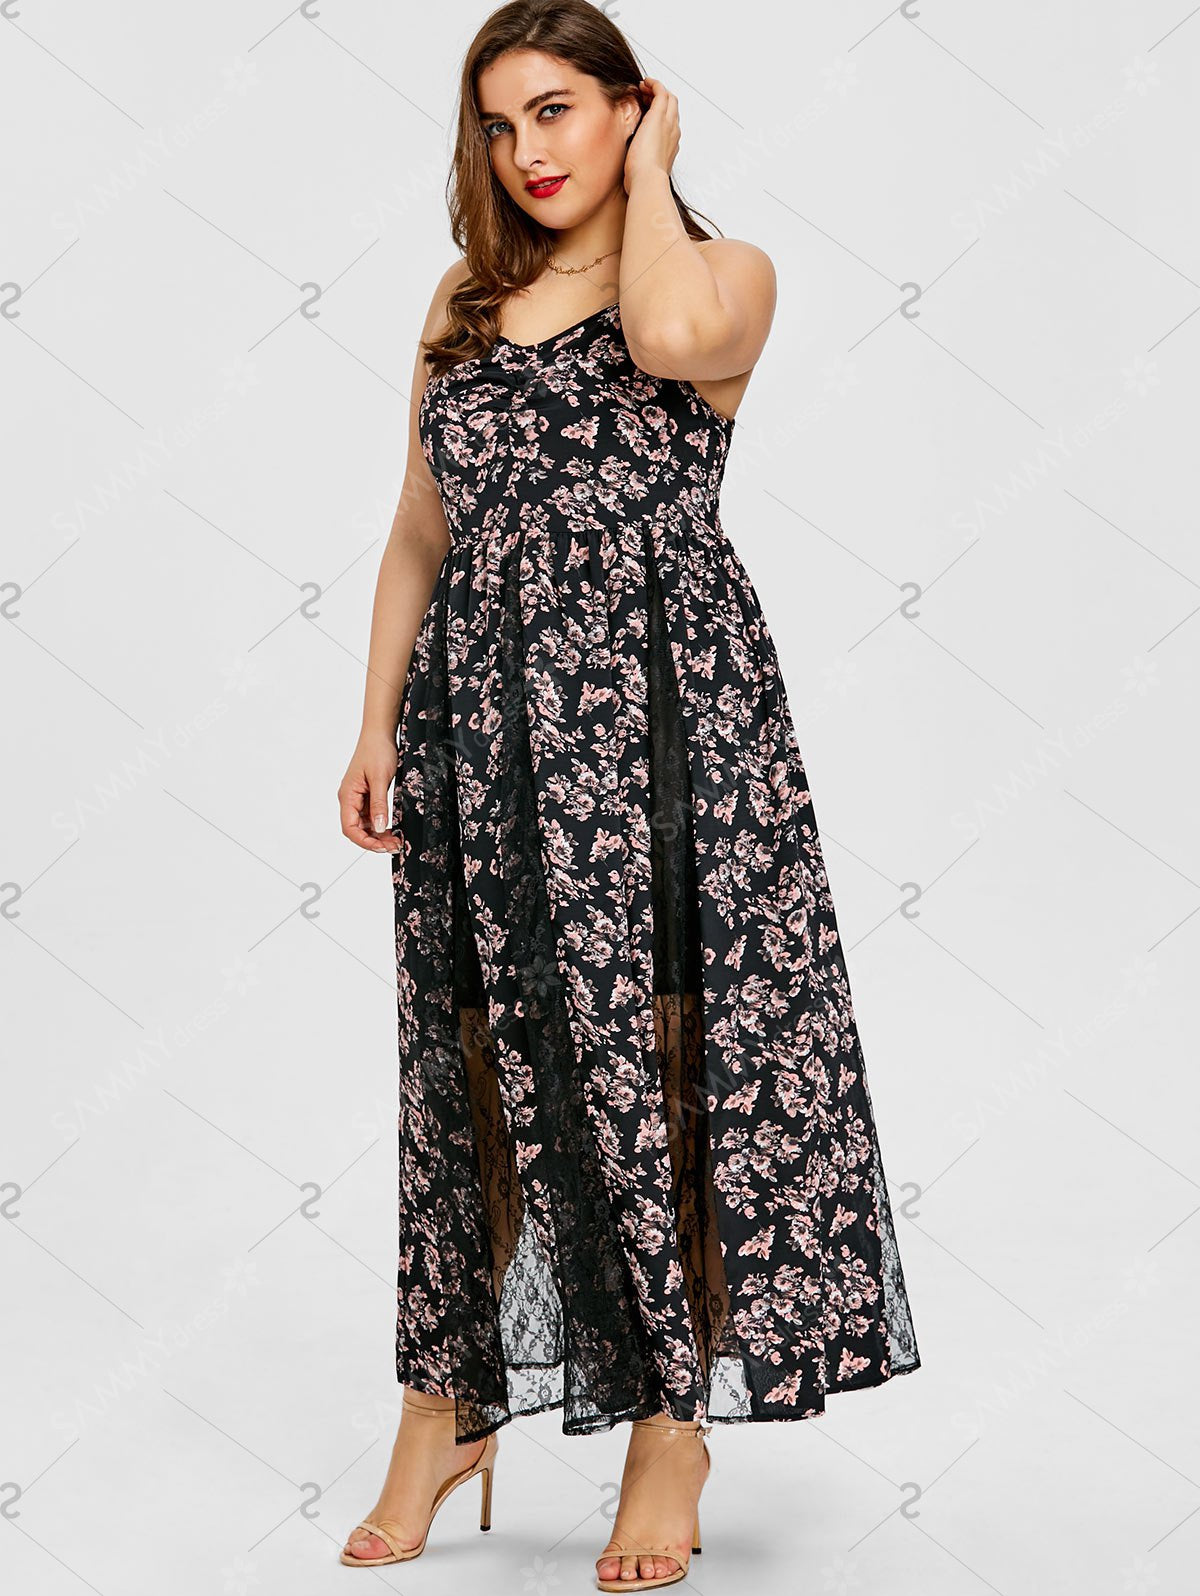 Plus Size Floral Print Lace Insert Maxi Dress - Black - 3xl - Azura Rose